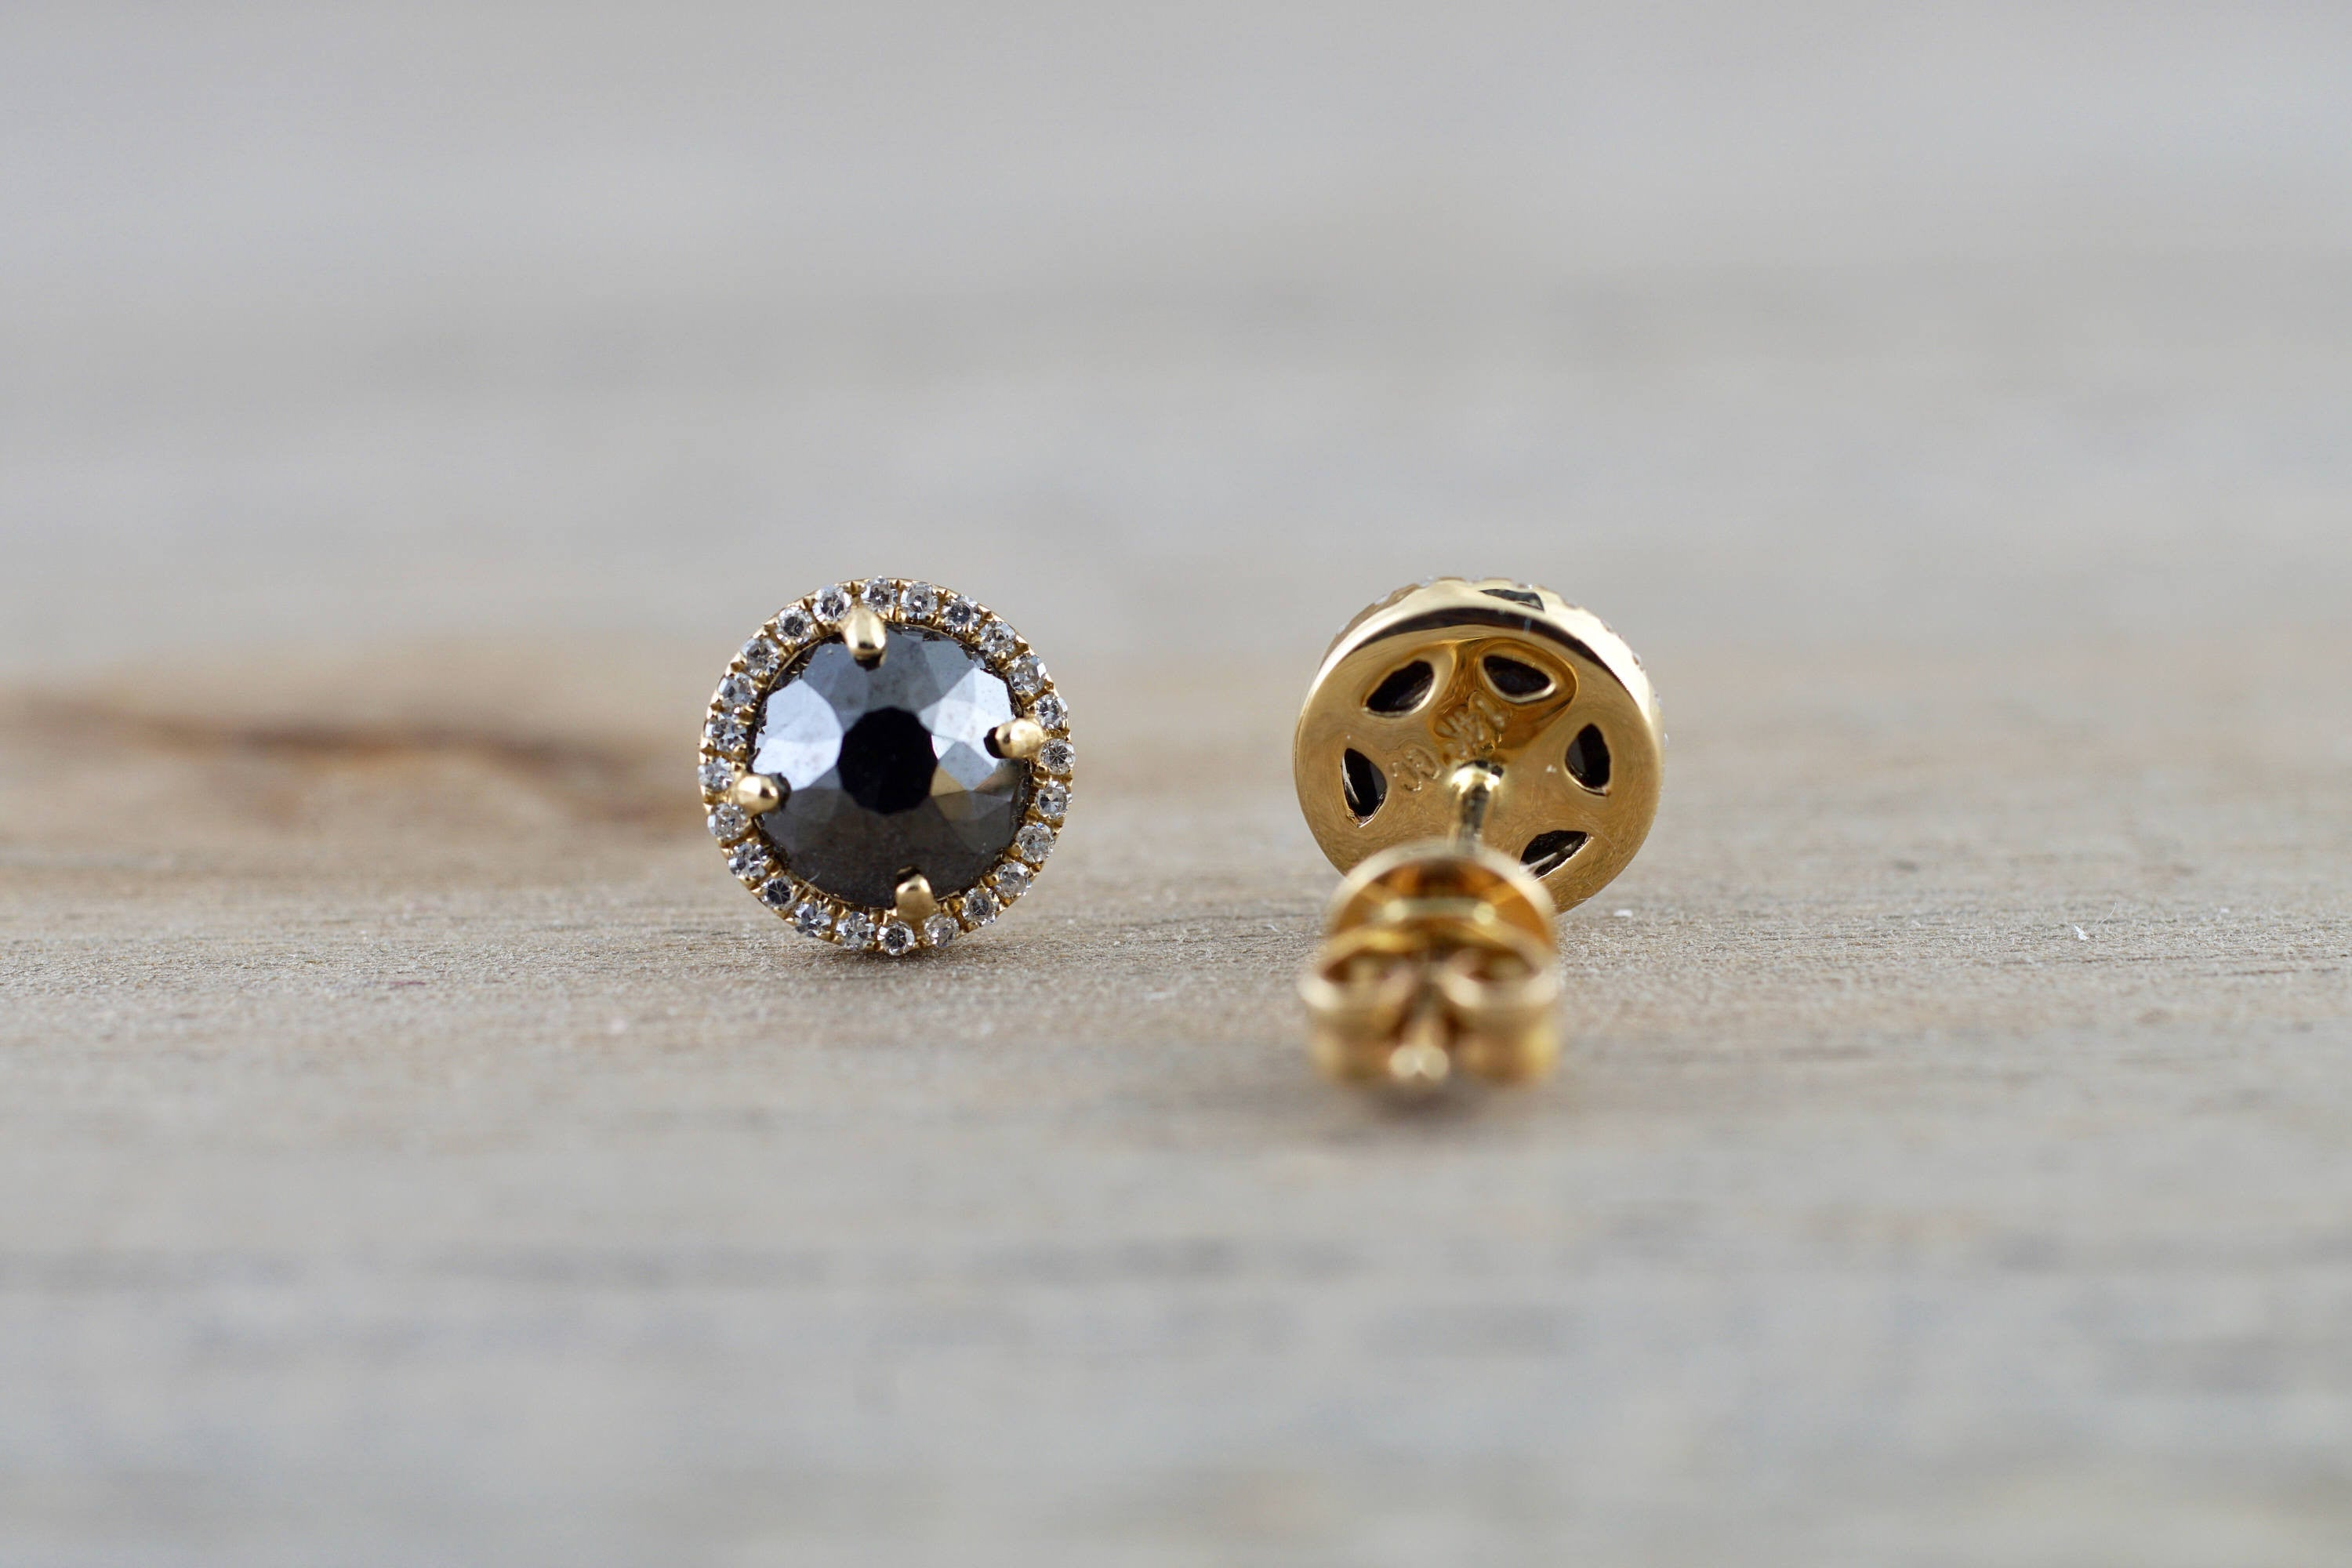 14k Yellow Gold Rose Cut Black Diamond Round Halo Earring Stud